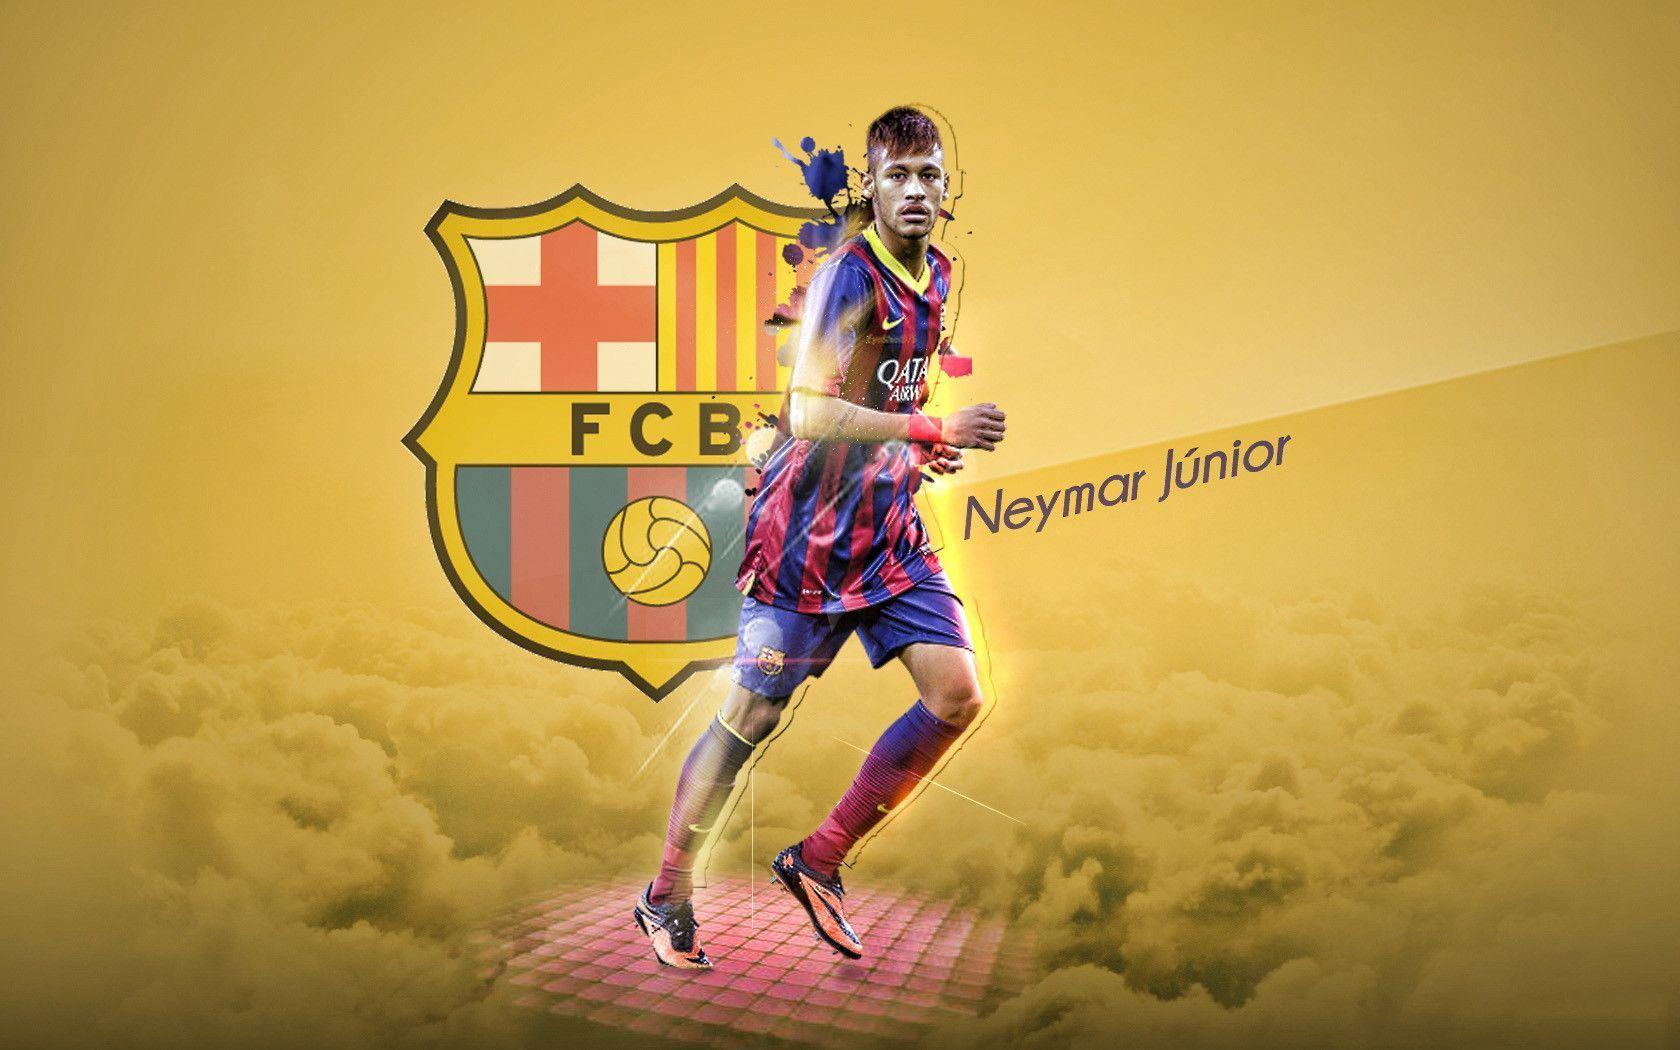 Neymar HD Wallpapers 2015 Sporteology